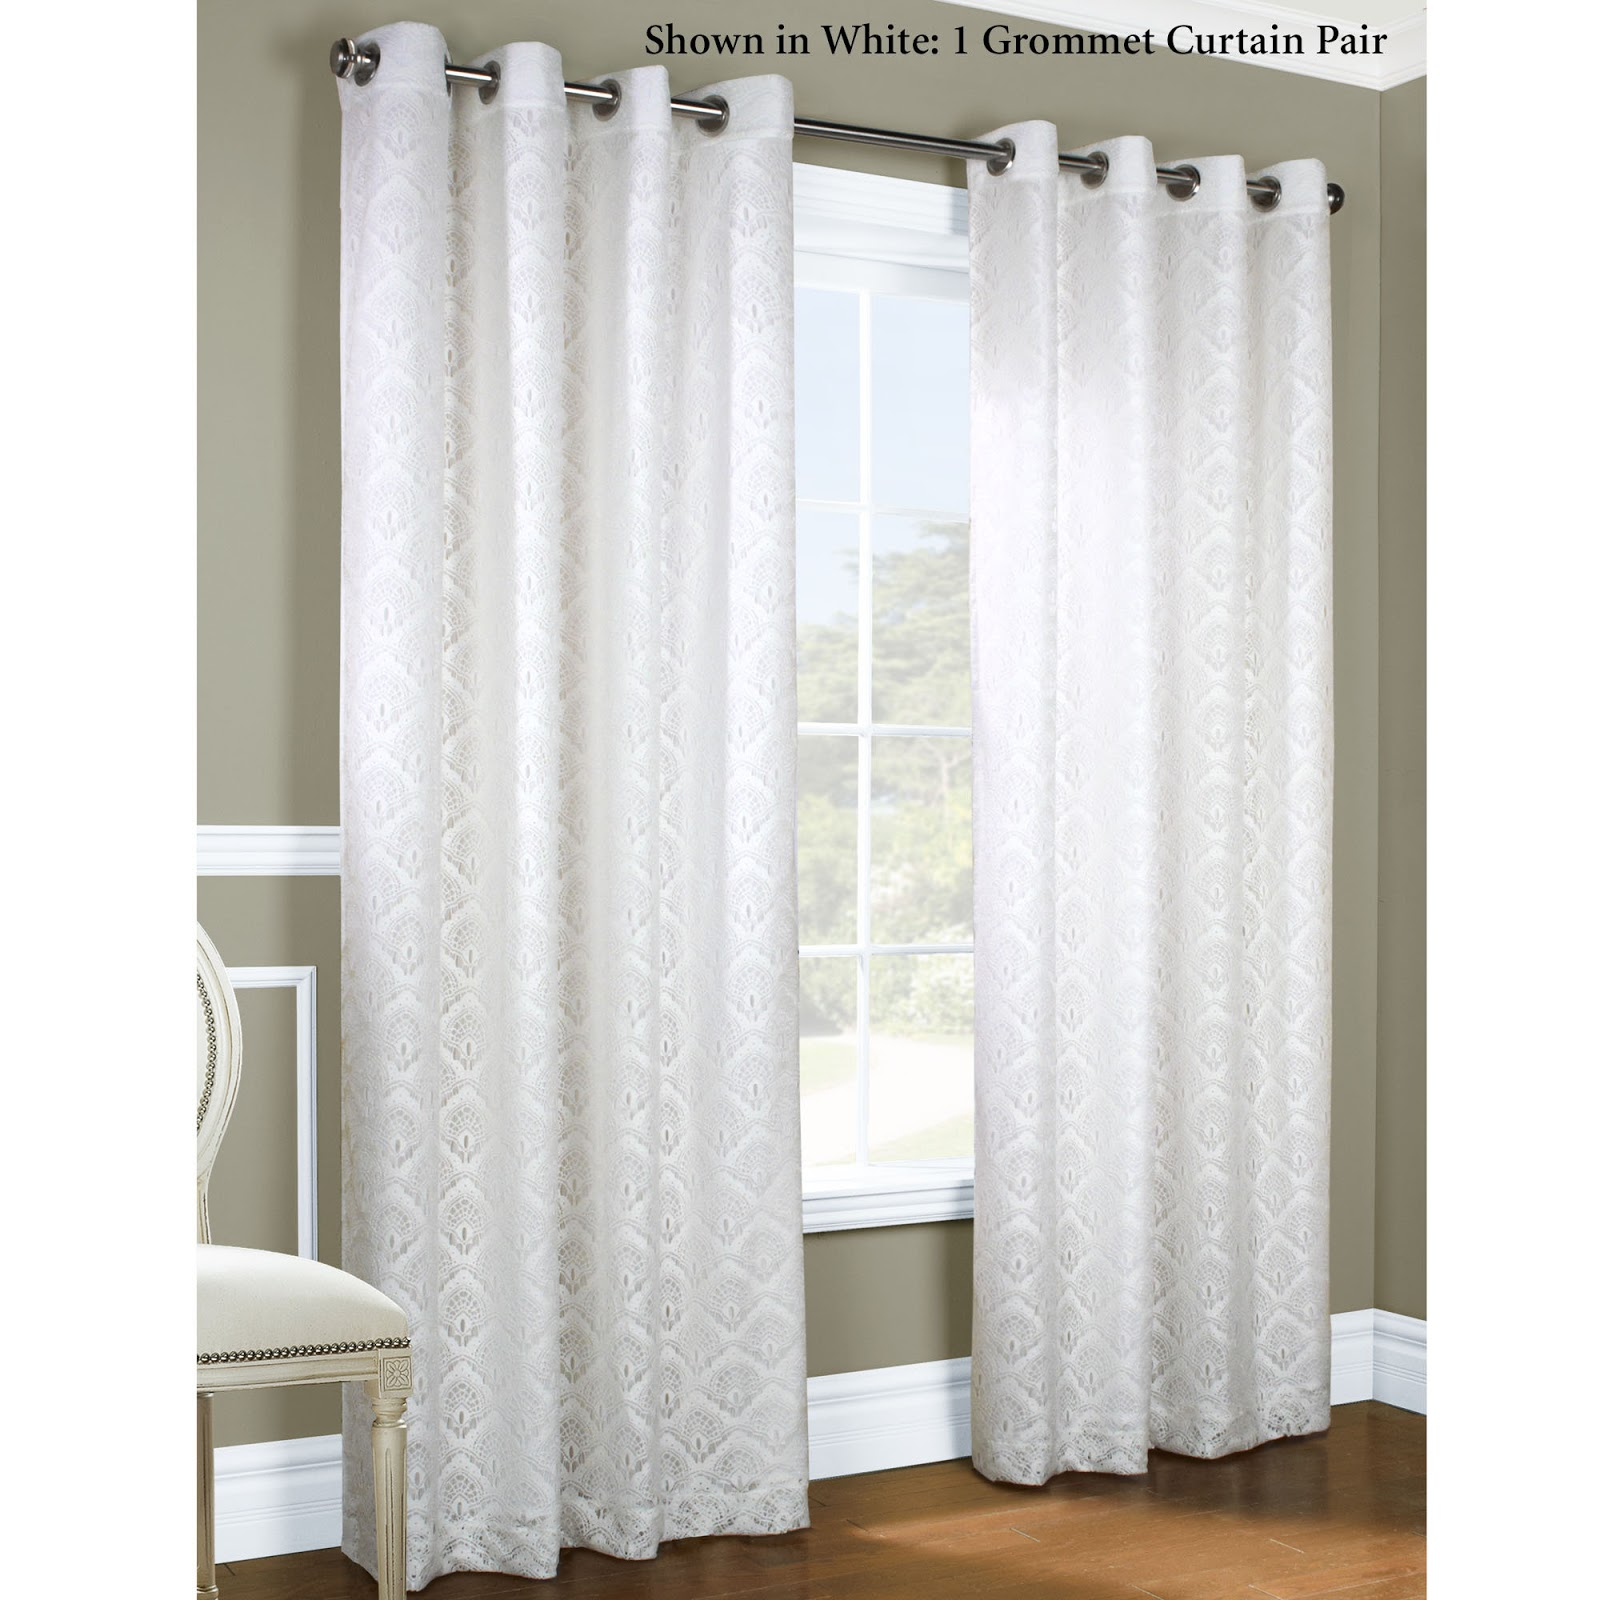 Mildew On Curtains Shower Curtain Mimi Faust Minecraft Blackout